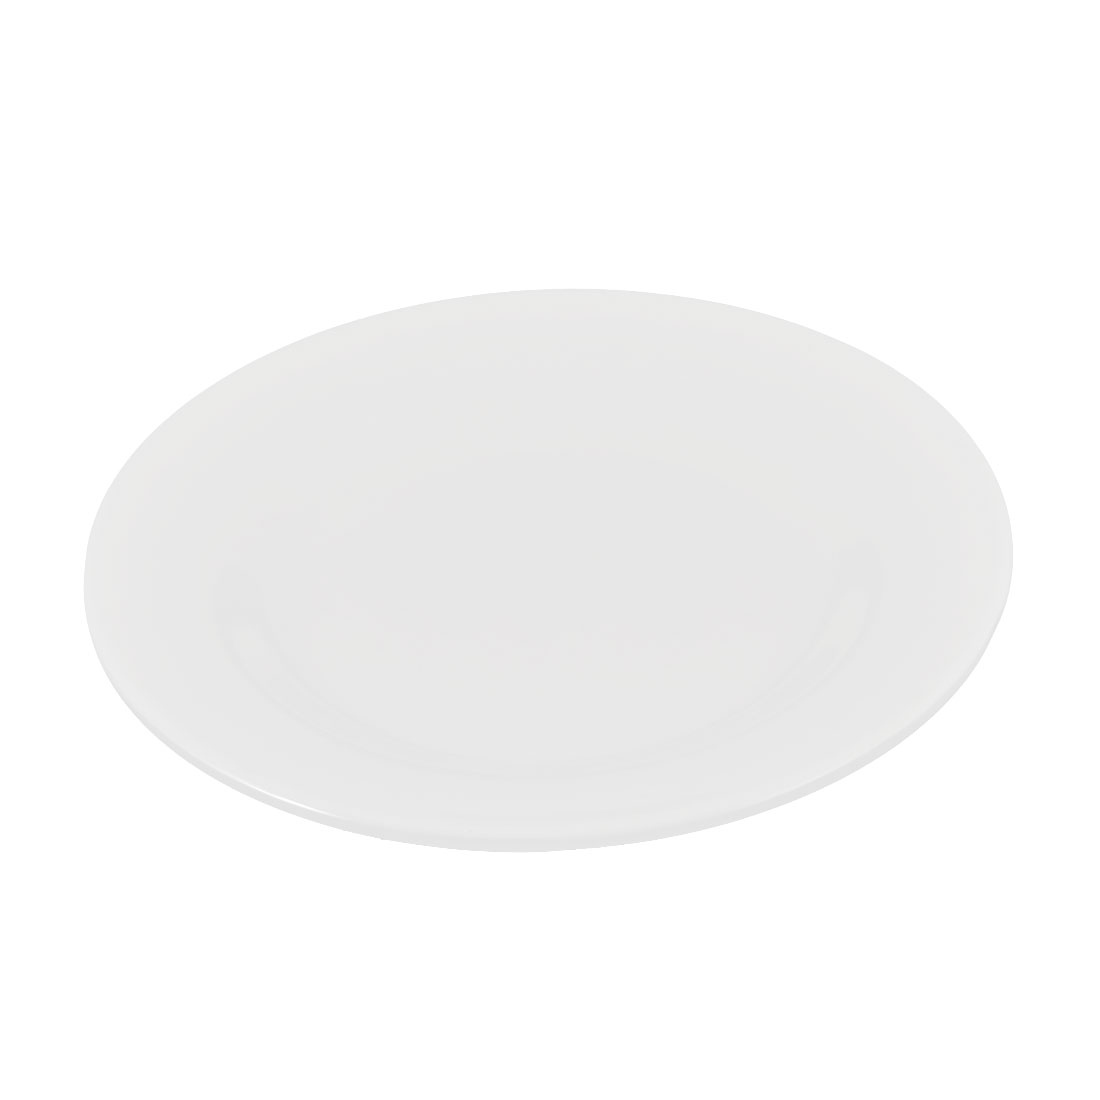 """Plastic Round Shaped Fruit Candy Food Dish Plate Tray Container White 6"""" Dia"""